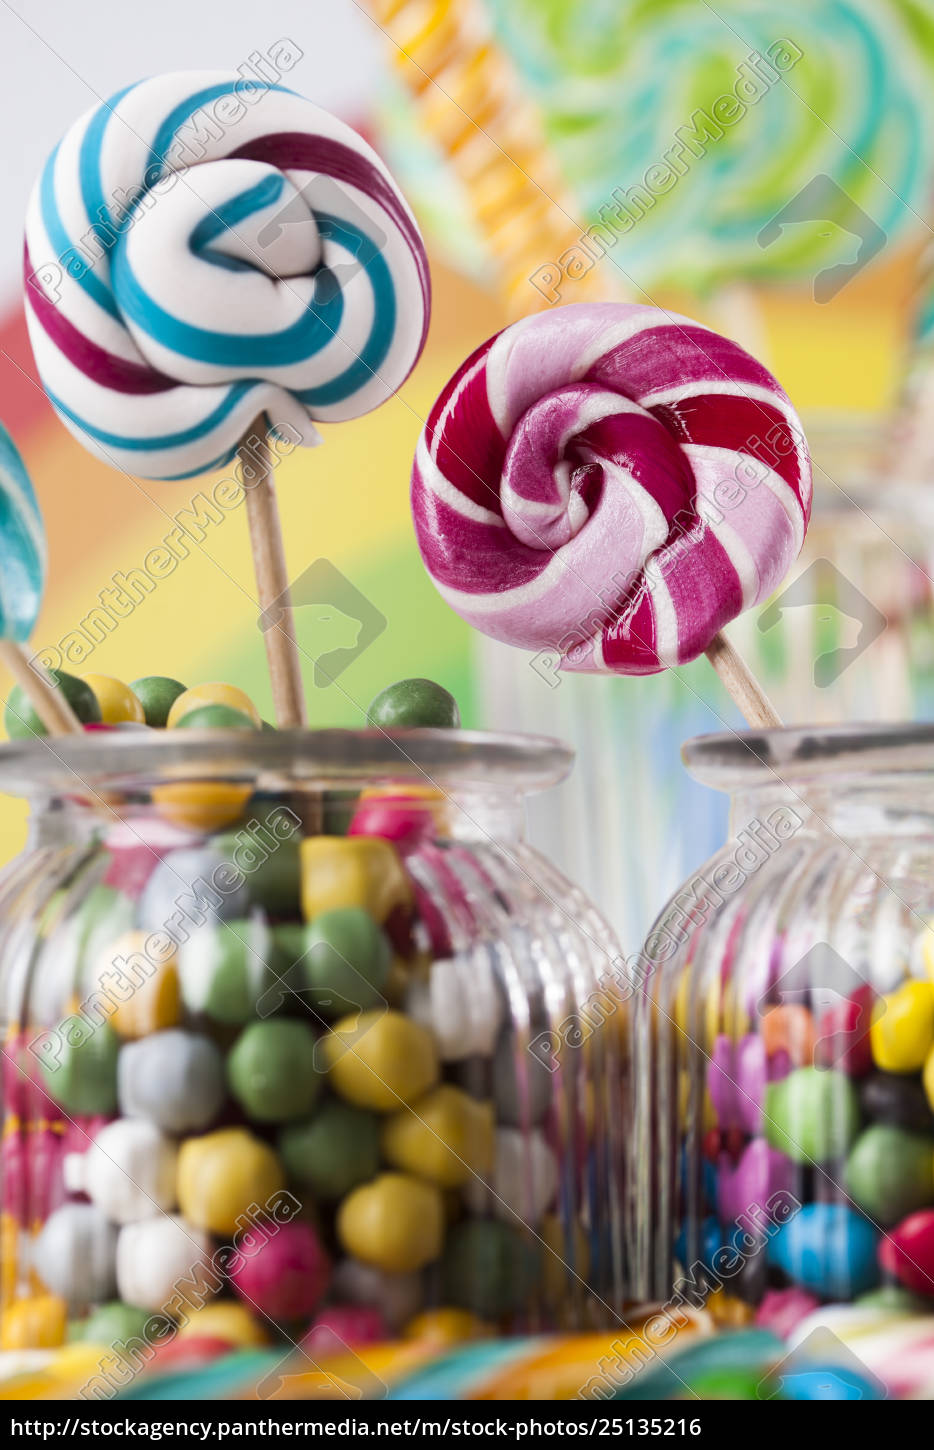 colorful, candies, in, jars, on, table - 25135216